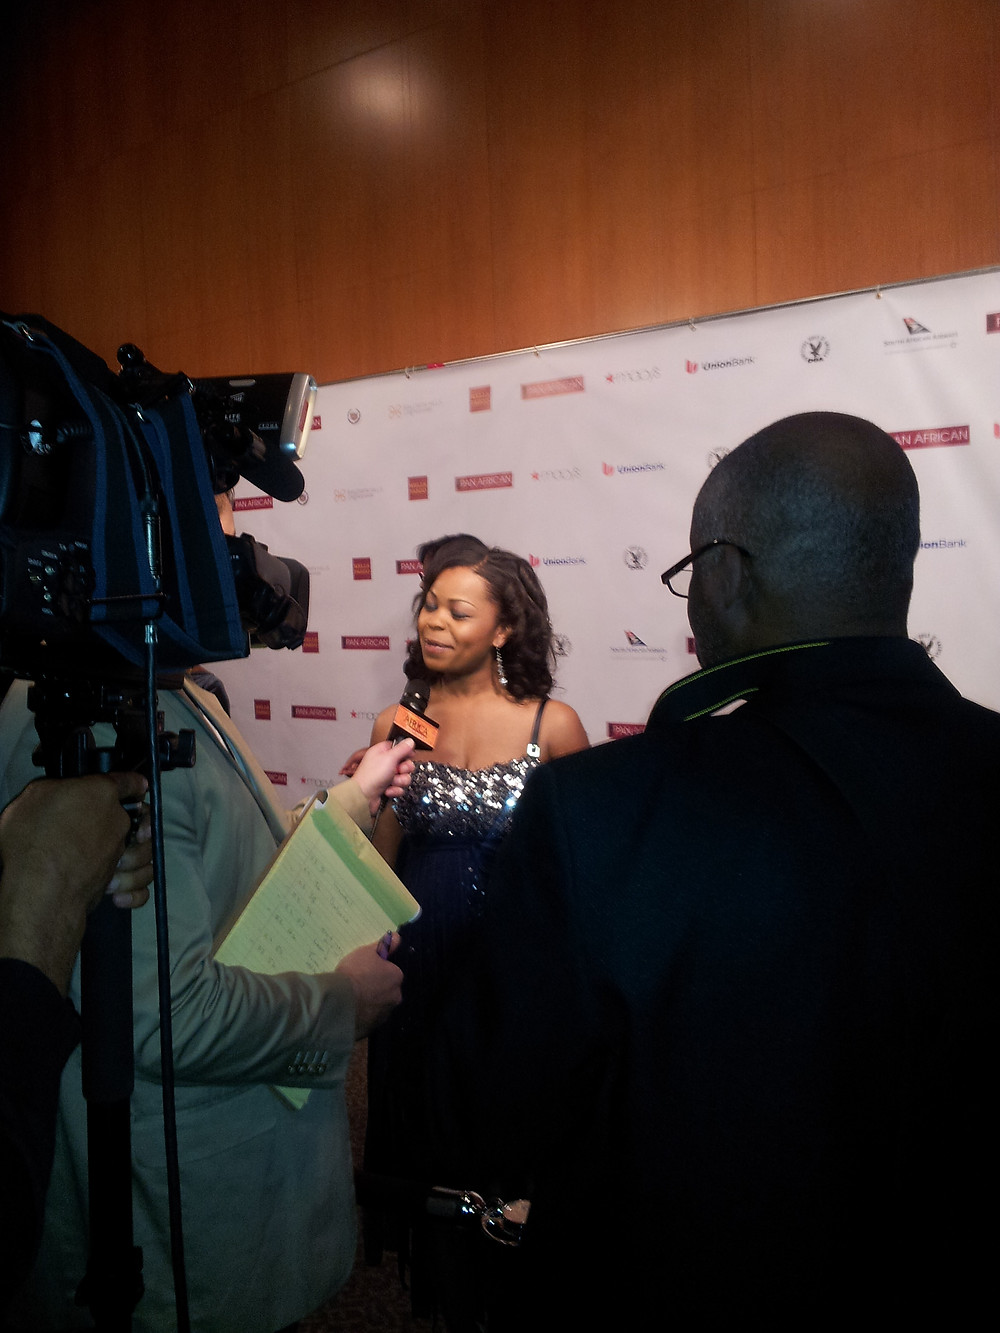 The Pan African Film Festival was a great experience and I enjoyed networking and meeting new people. I was excited that Pathways of Life feature film was accepted into the second largest black film festival which was held in California.